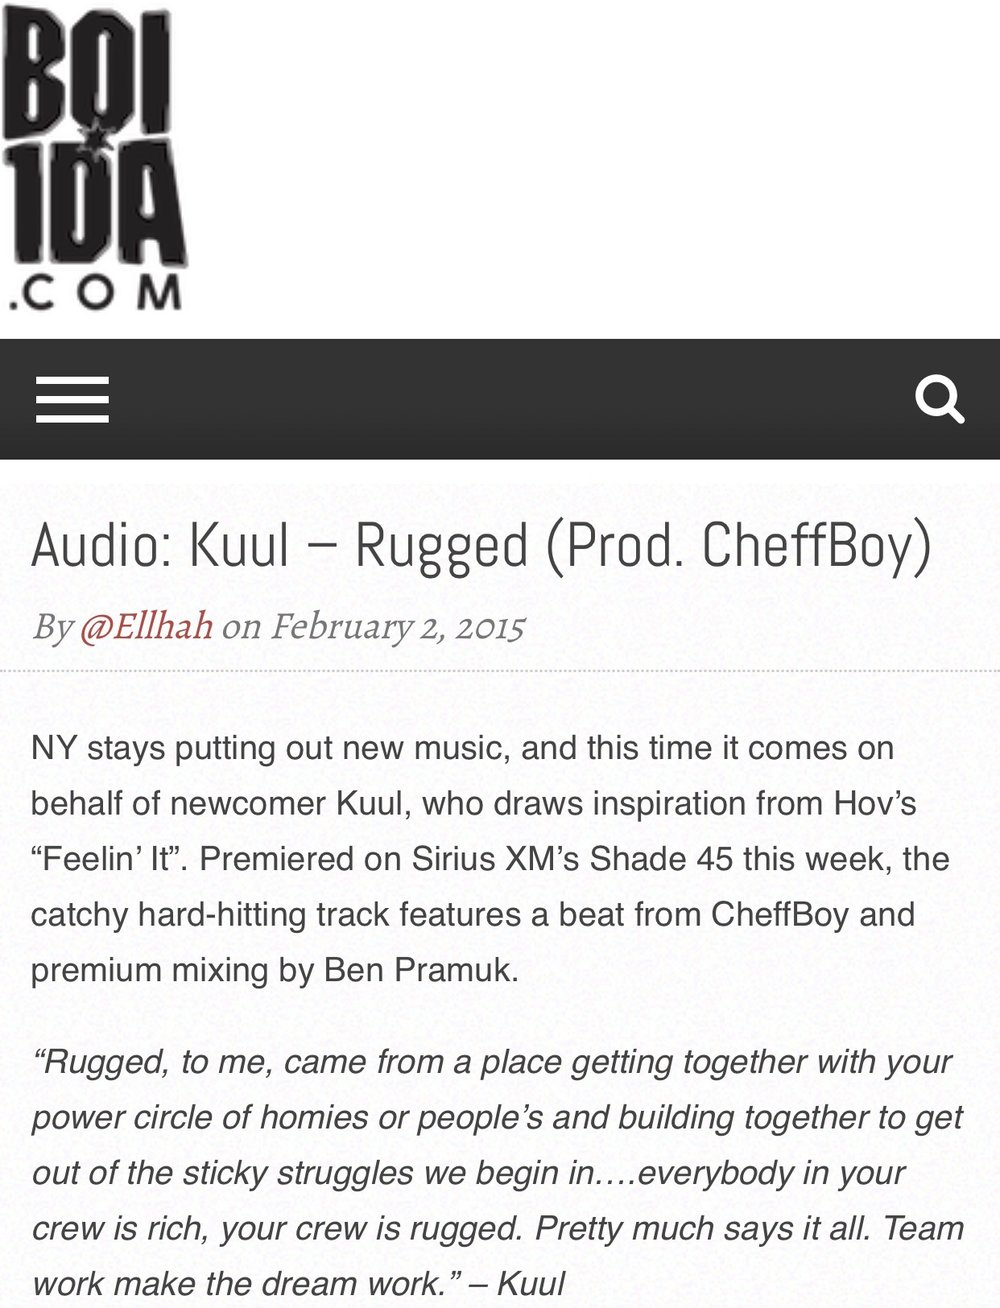 KuuL_Boi_1da_Rugged